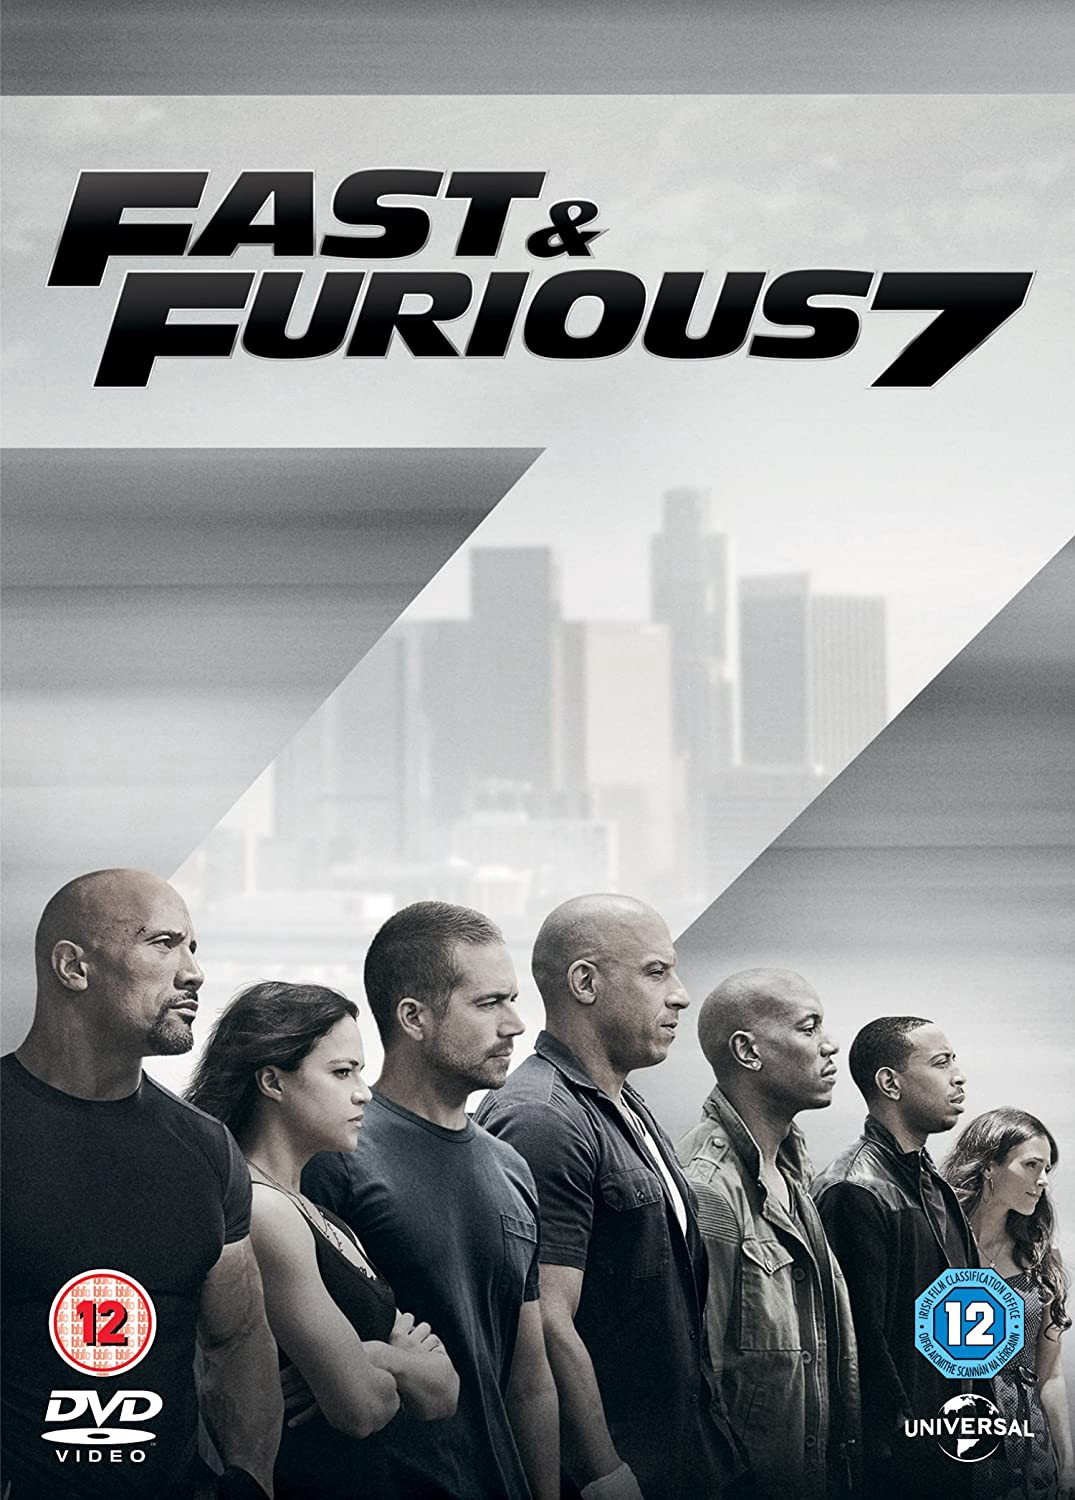 fast and furious 5 full movie free online 123movies